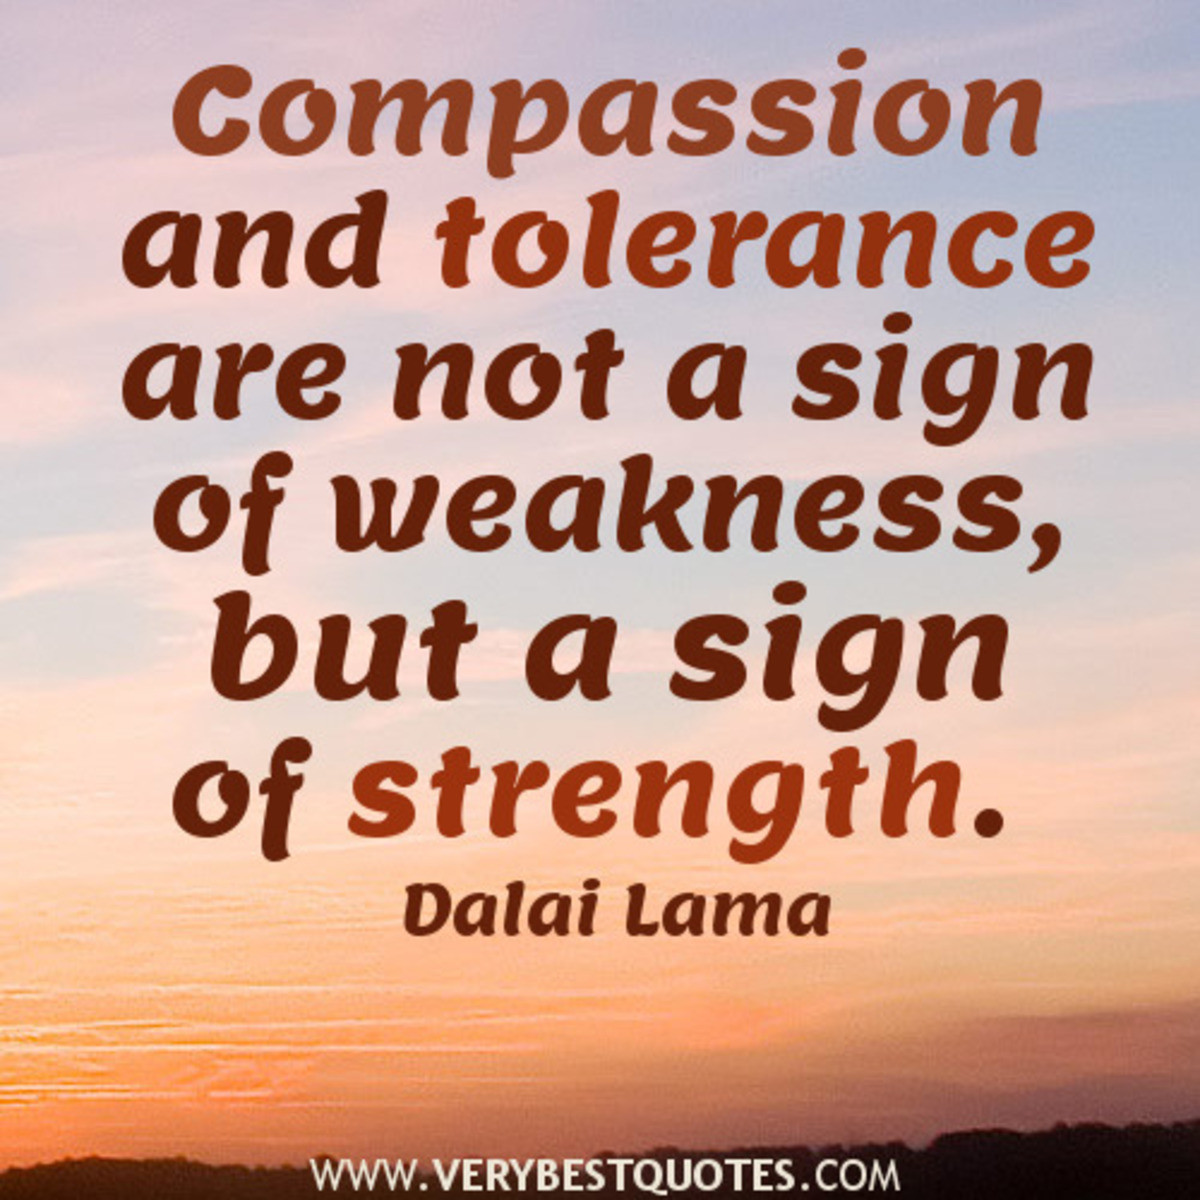 Compassion. Go ahead, brighten someone's day. Make them happy.. compassion and tolerance are not a sign of weakness, but a sign of strength. Danni Lama RYE ESTI